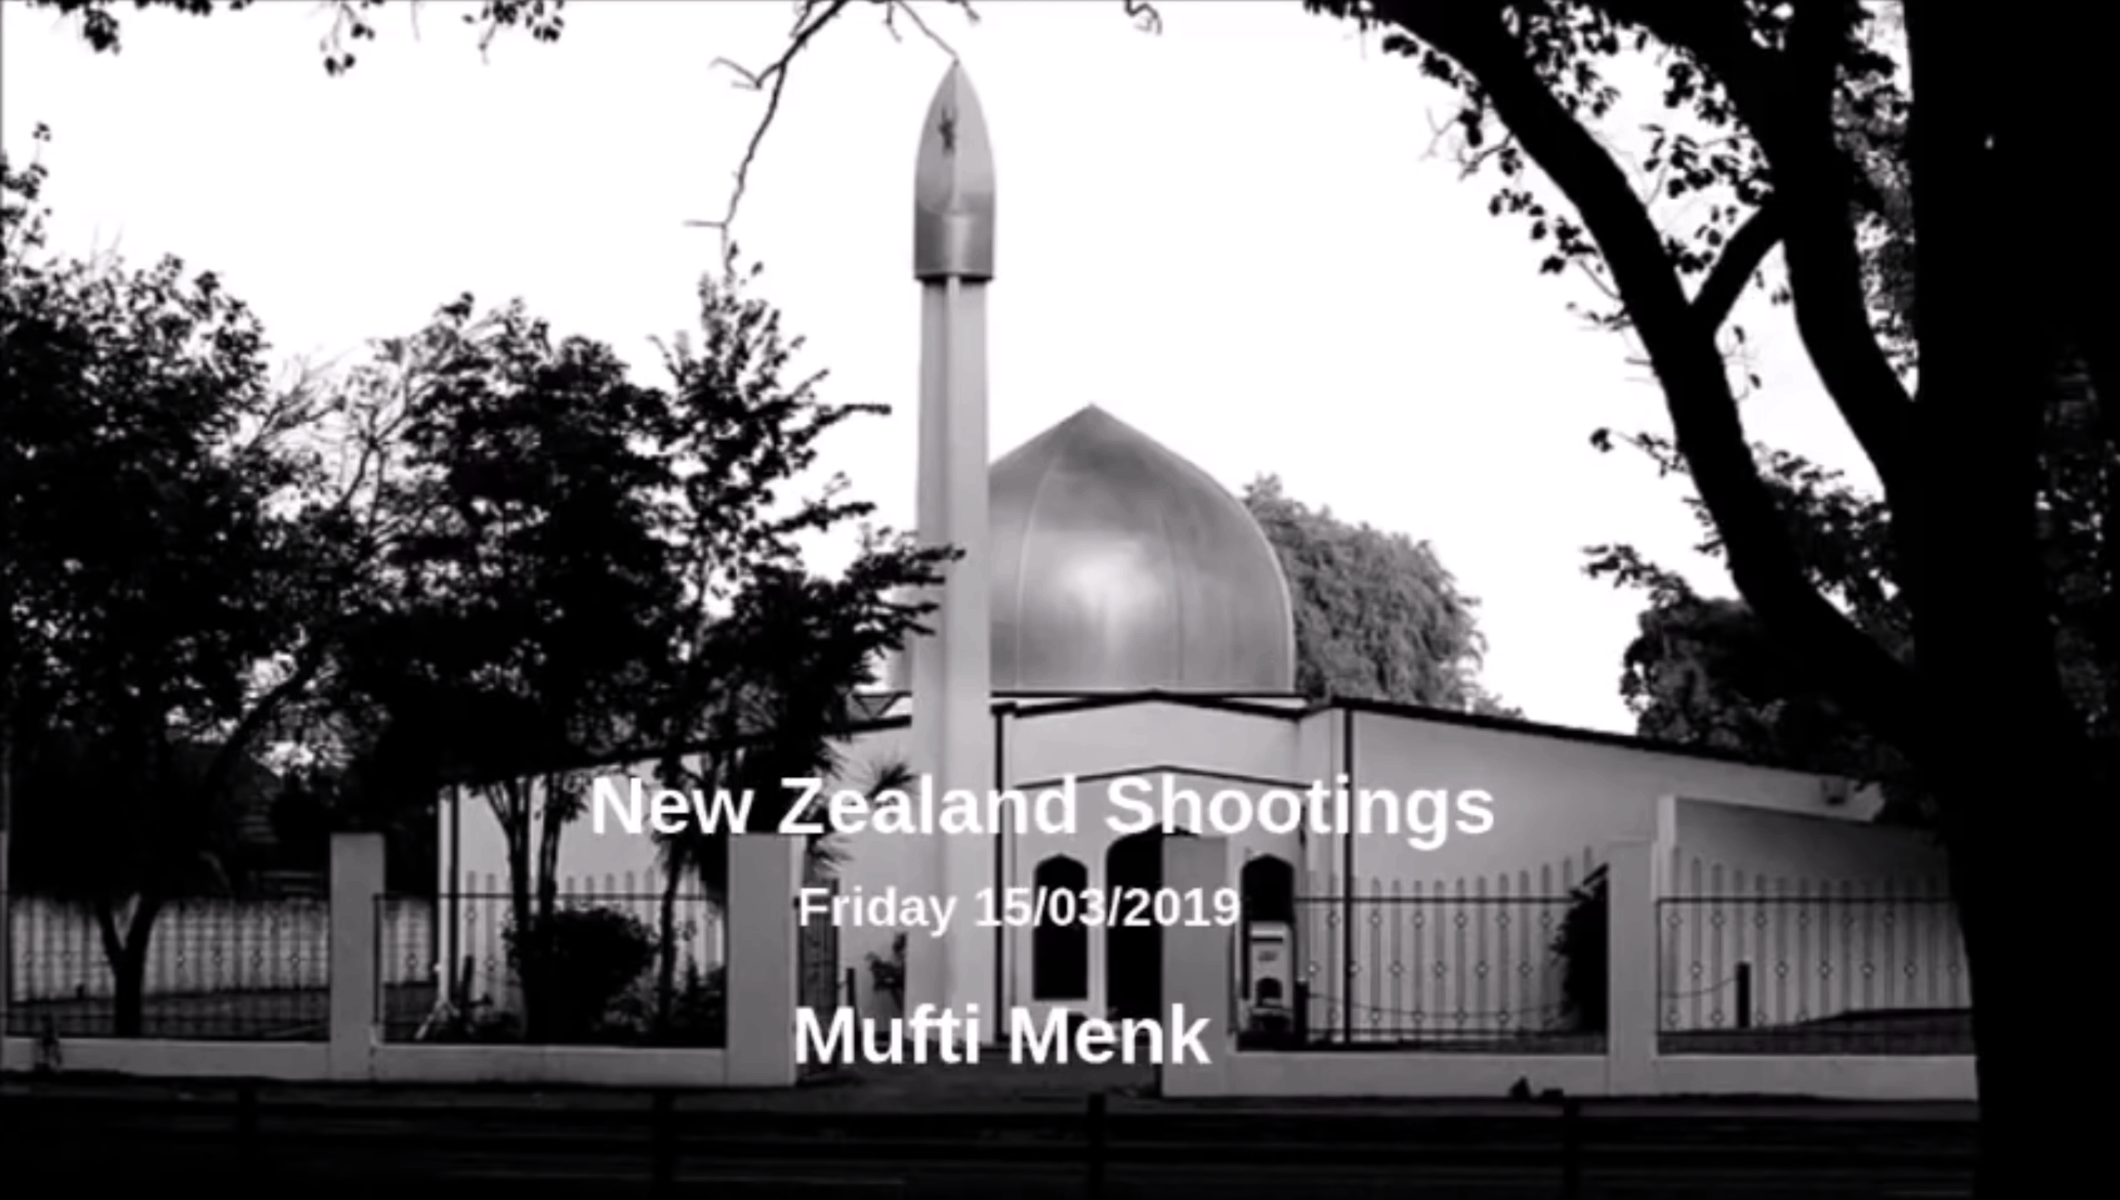 Ismail ibn Musa Menk – The New Zealand Shootings